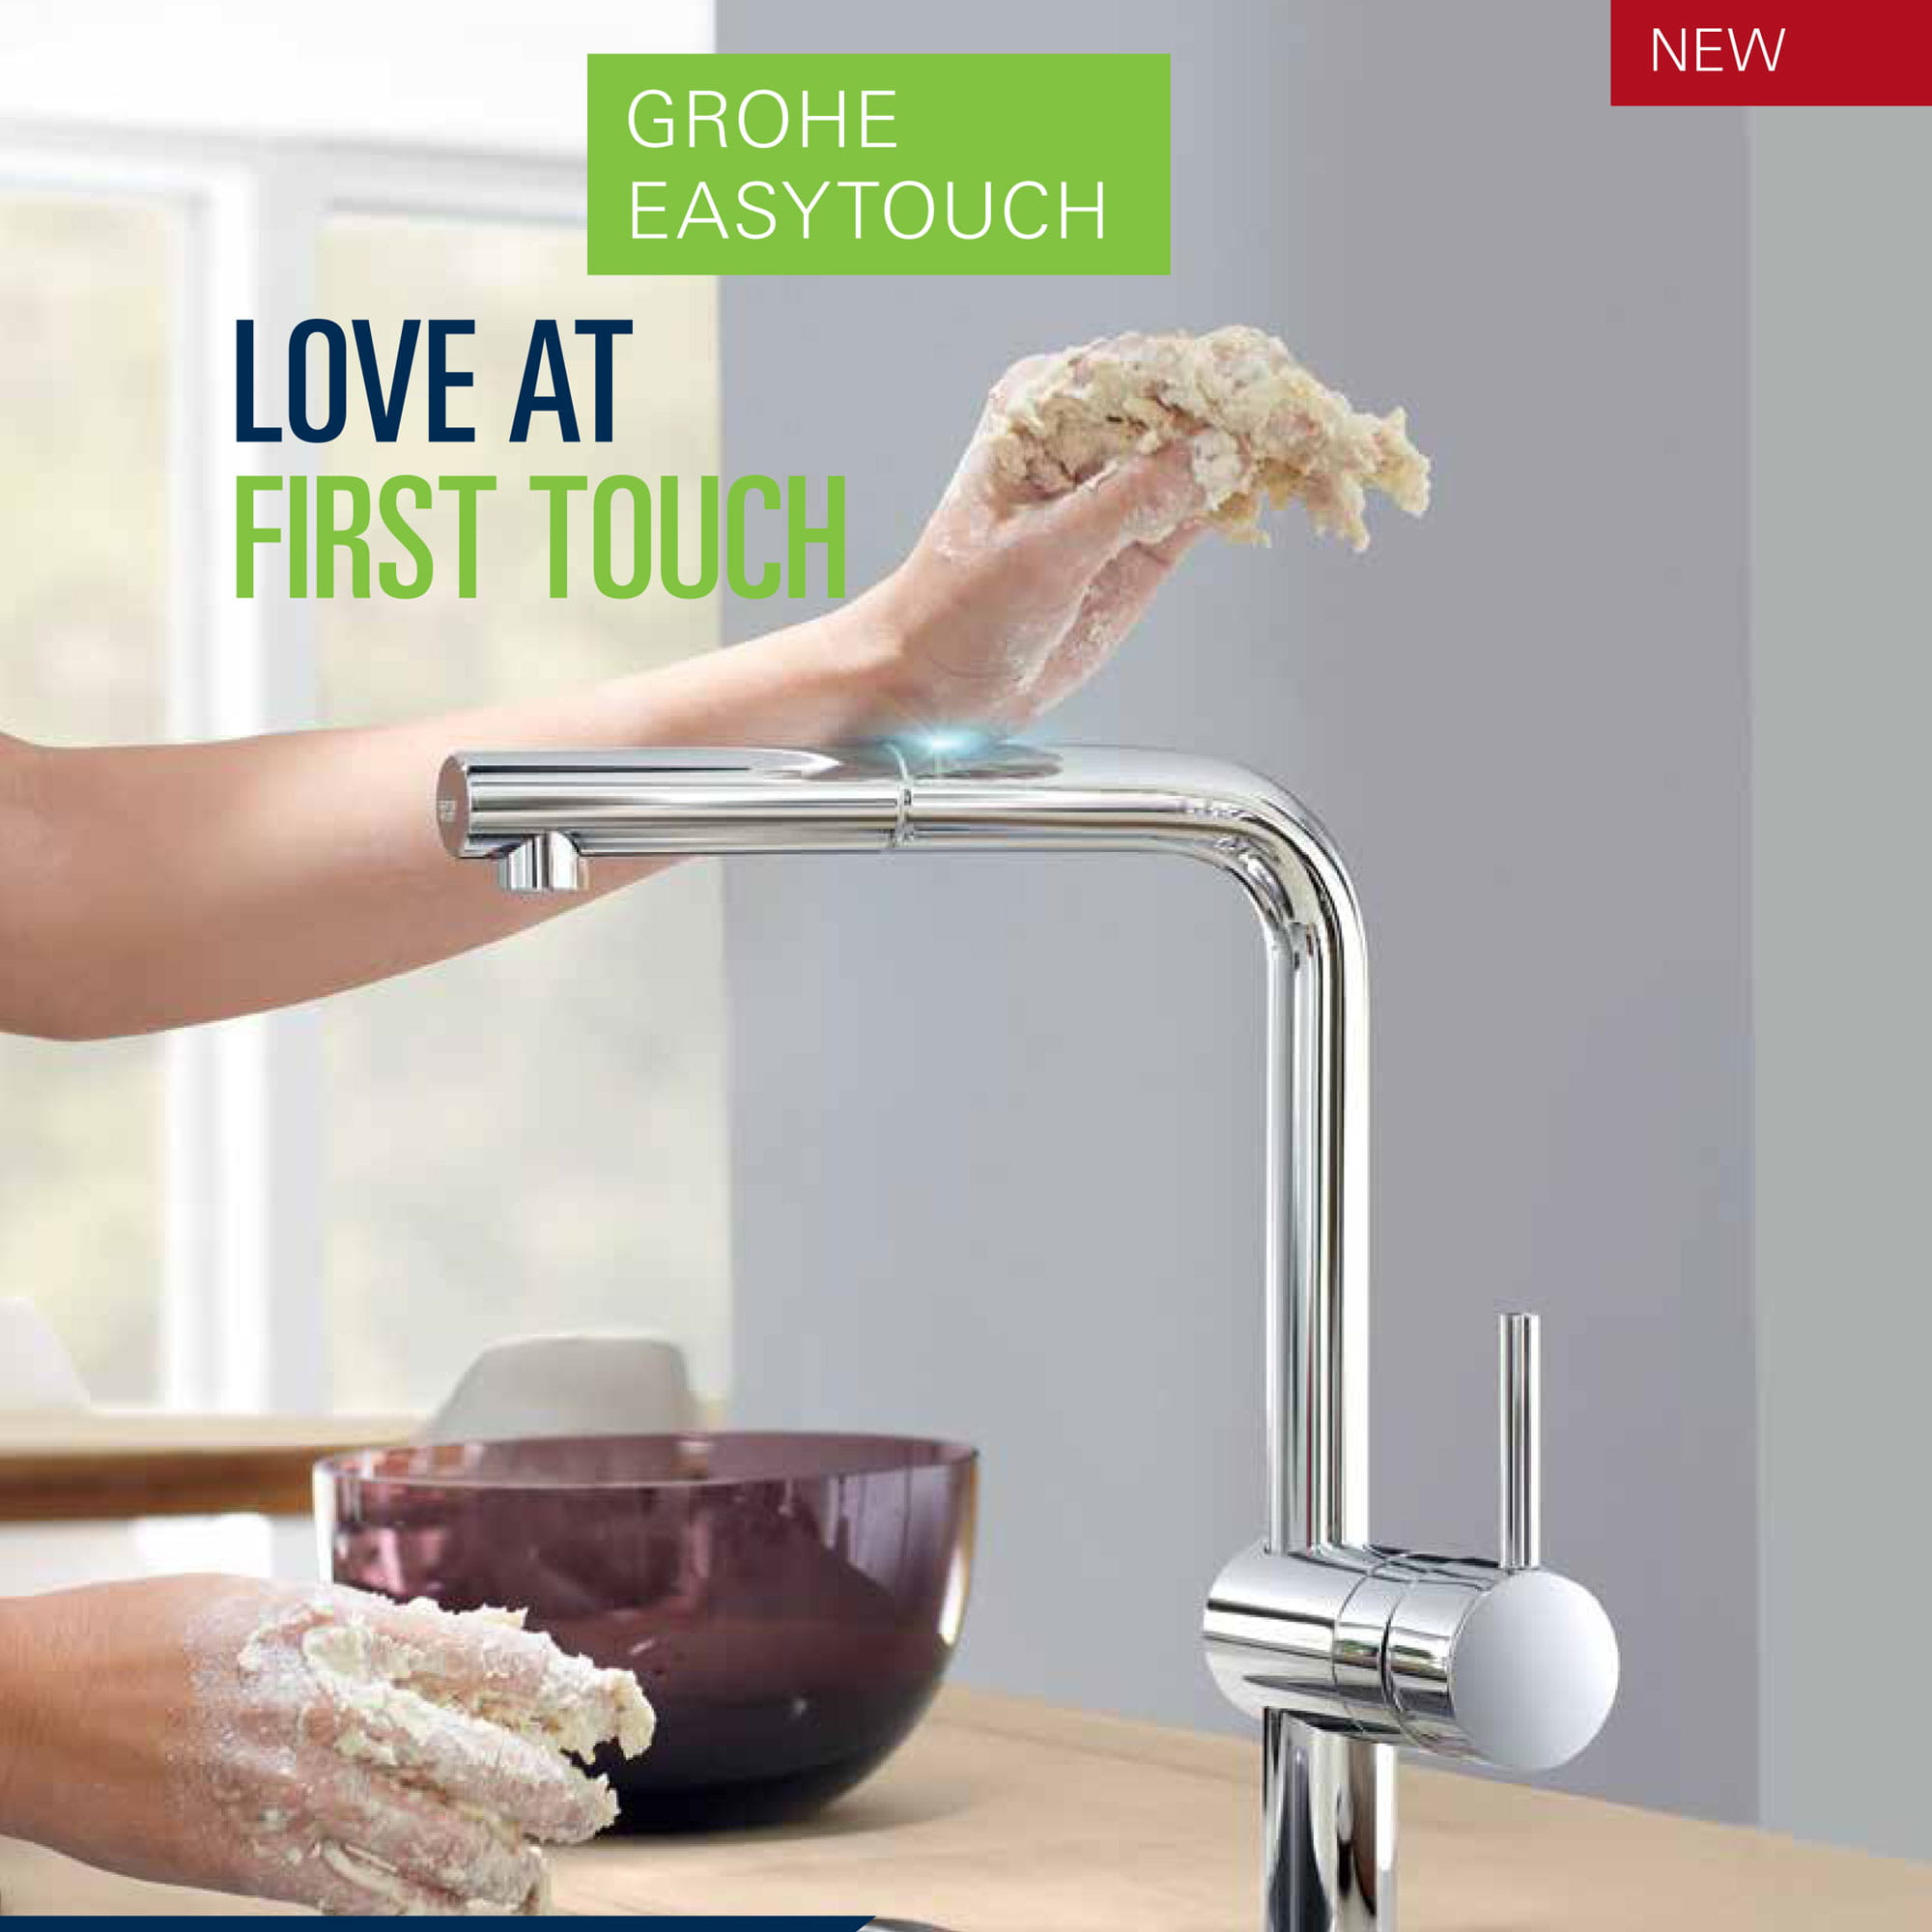 Faucet and dirty hands using the Grohe Easy Touch fuction